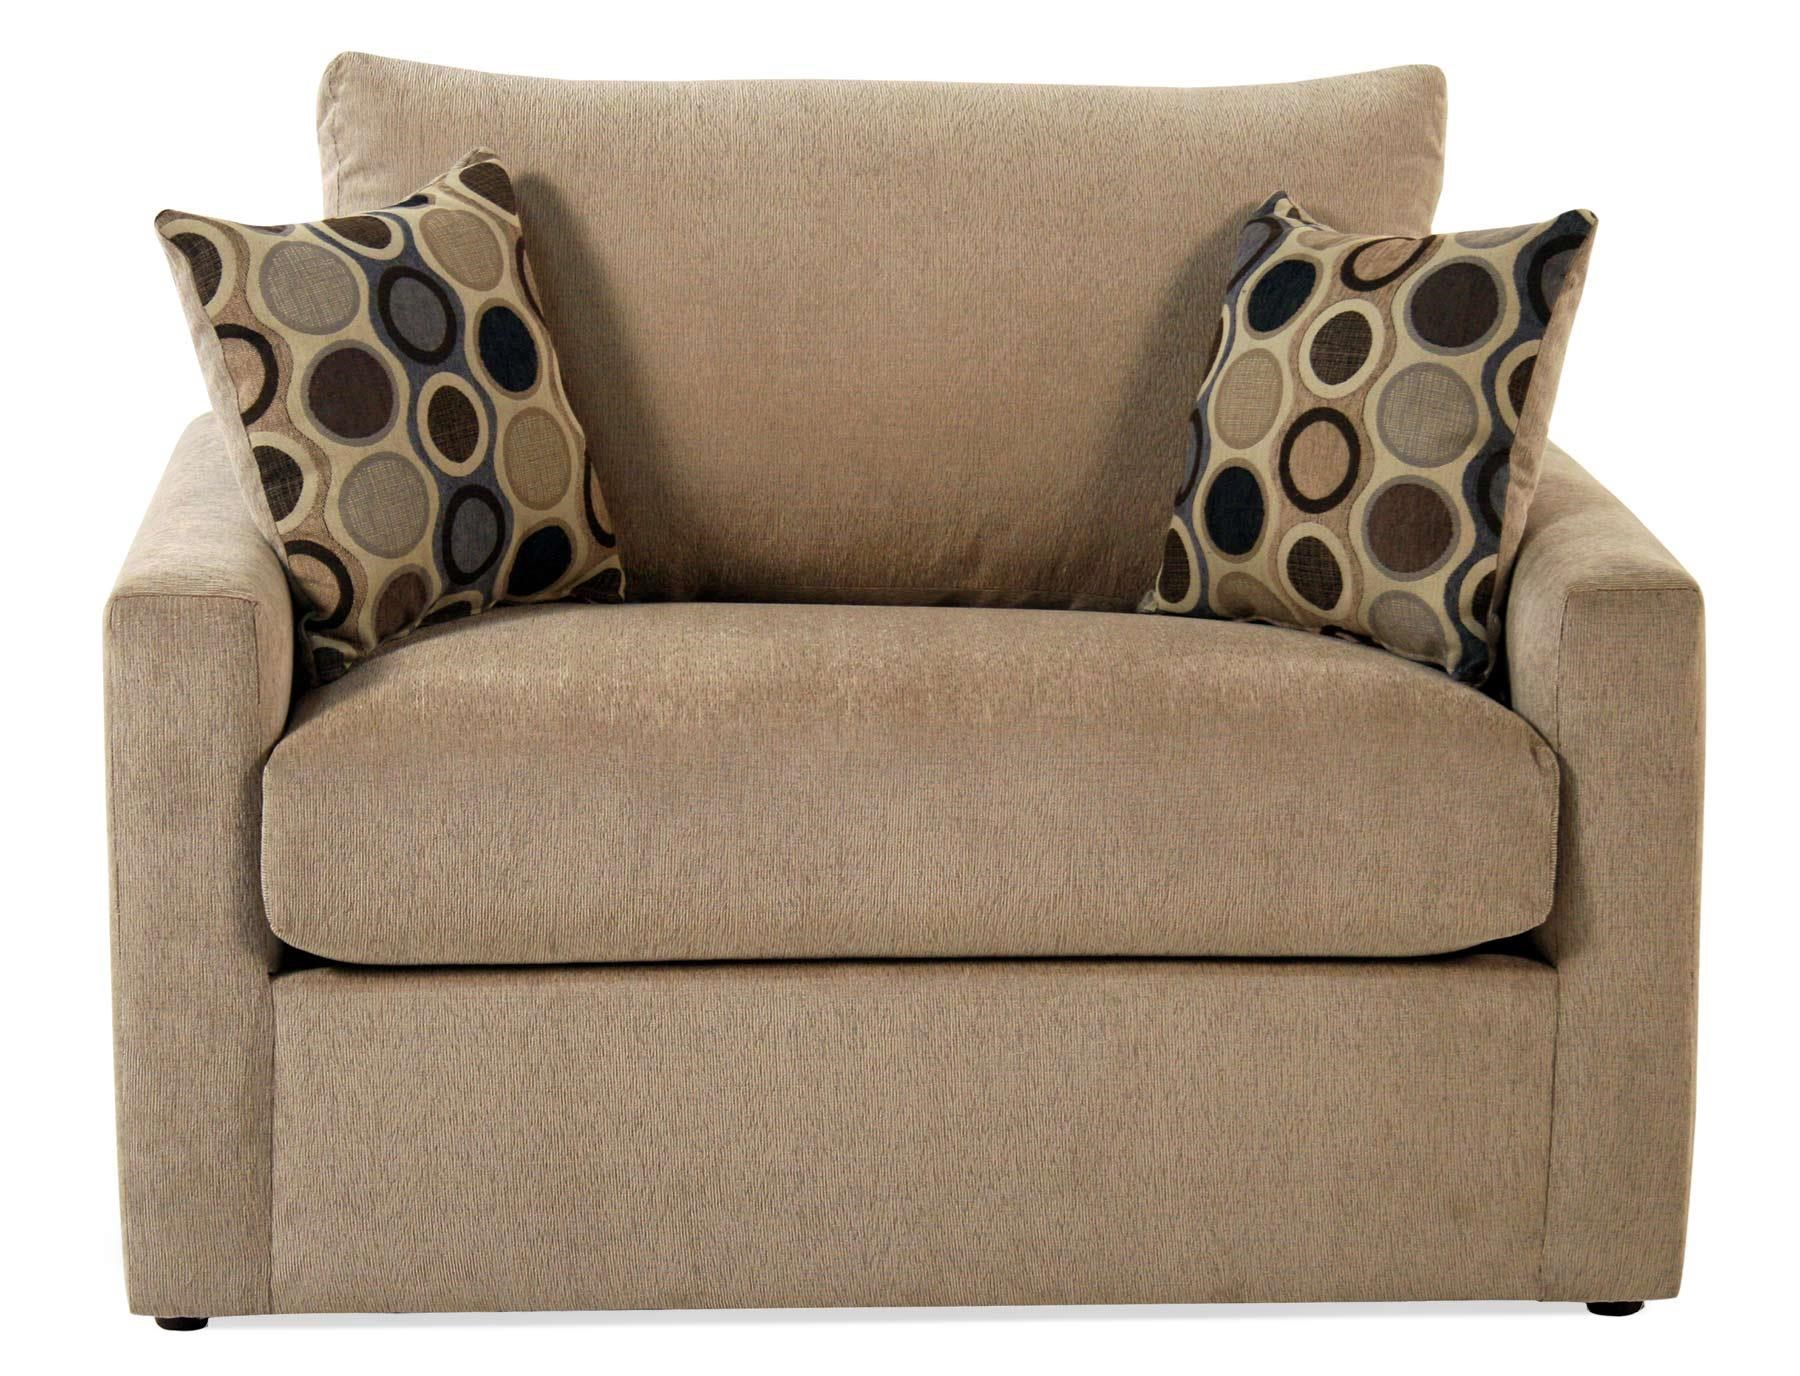 Madison Manor Sleepers Contemporary Twin Sleep Sofa - Item Number: 4433